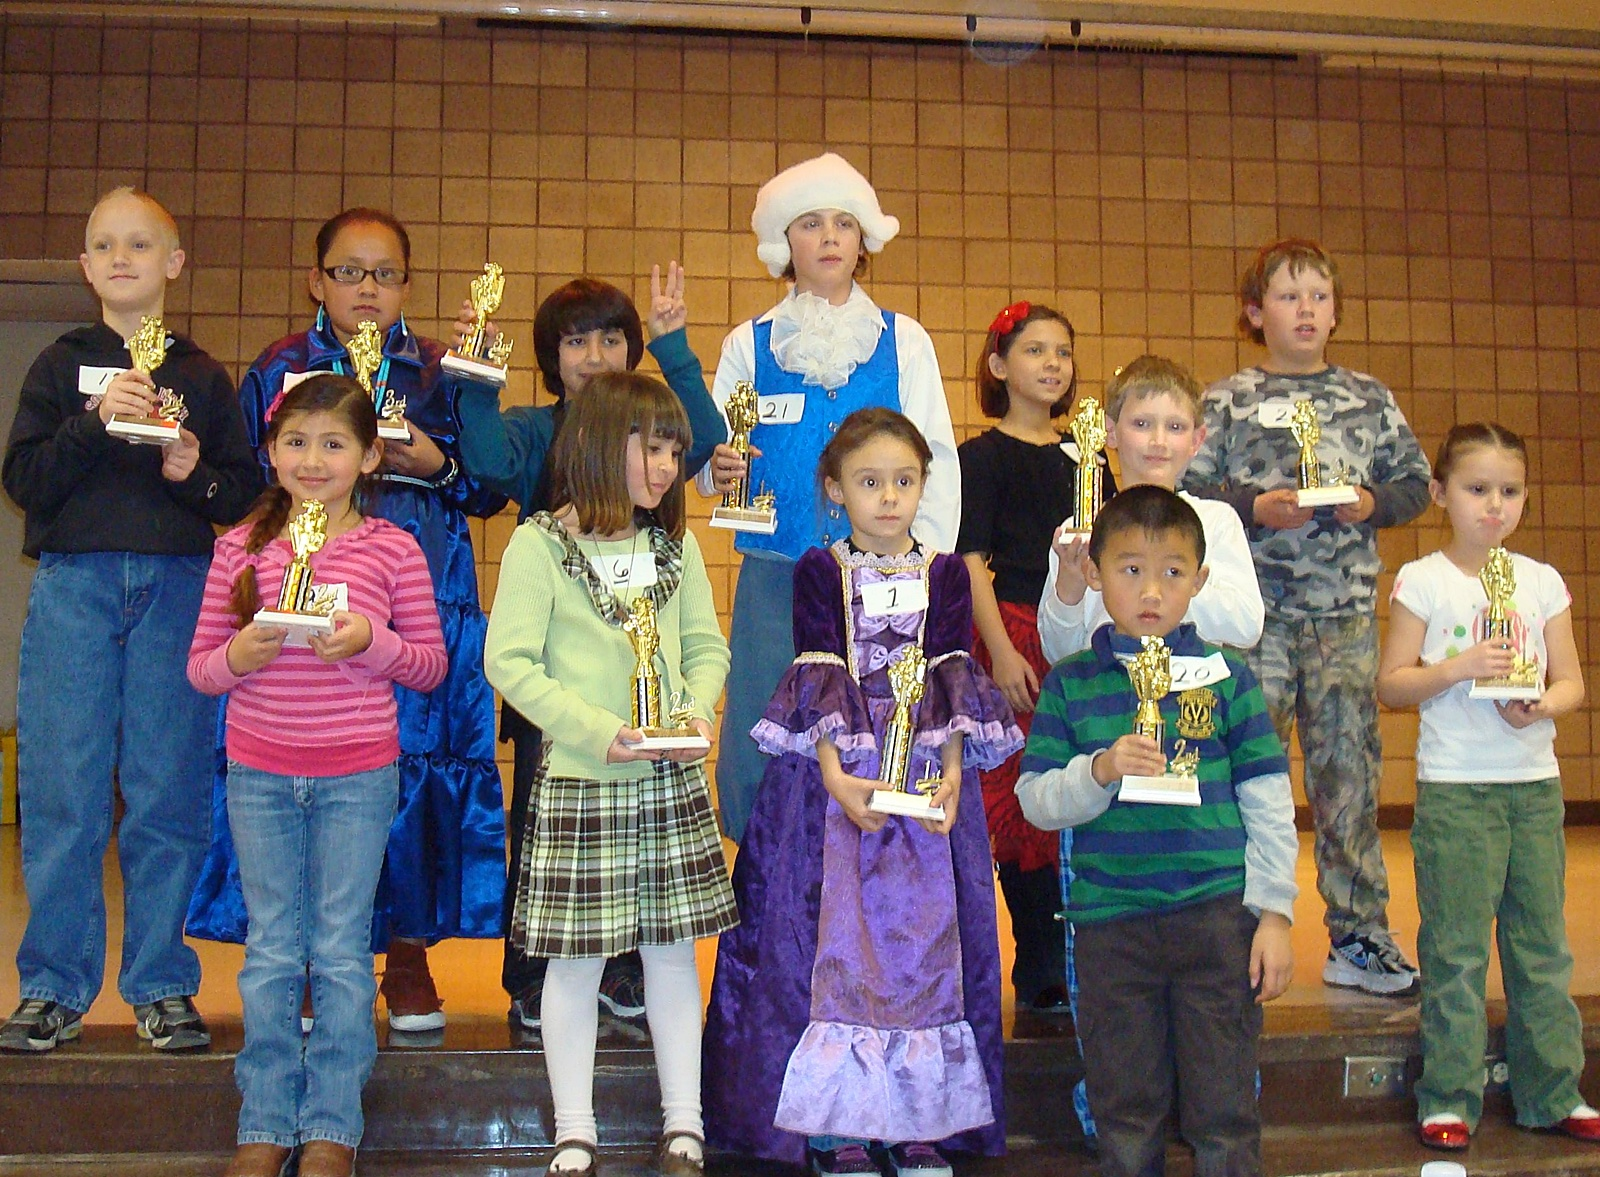 New mexico socorro county magdalena - Pictured Are The Winners Of The Socorro County Declamation Contest Held At The Fine Arts Center At Magdalena Schools On Dec 2